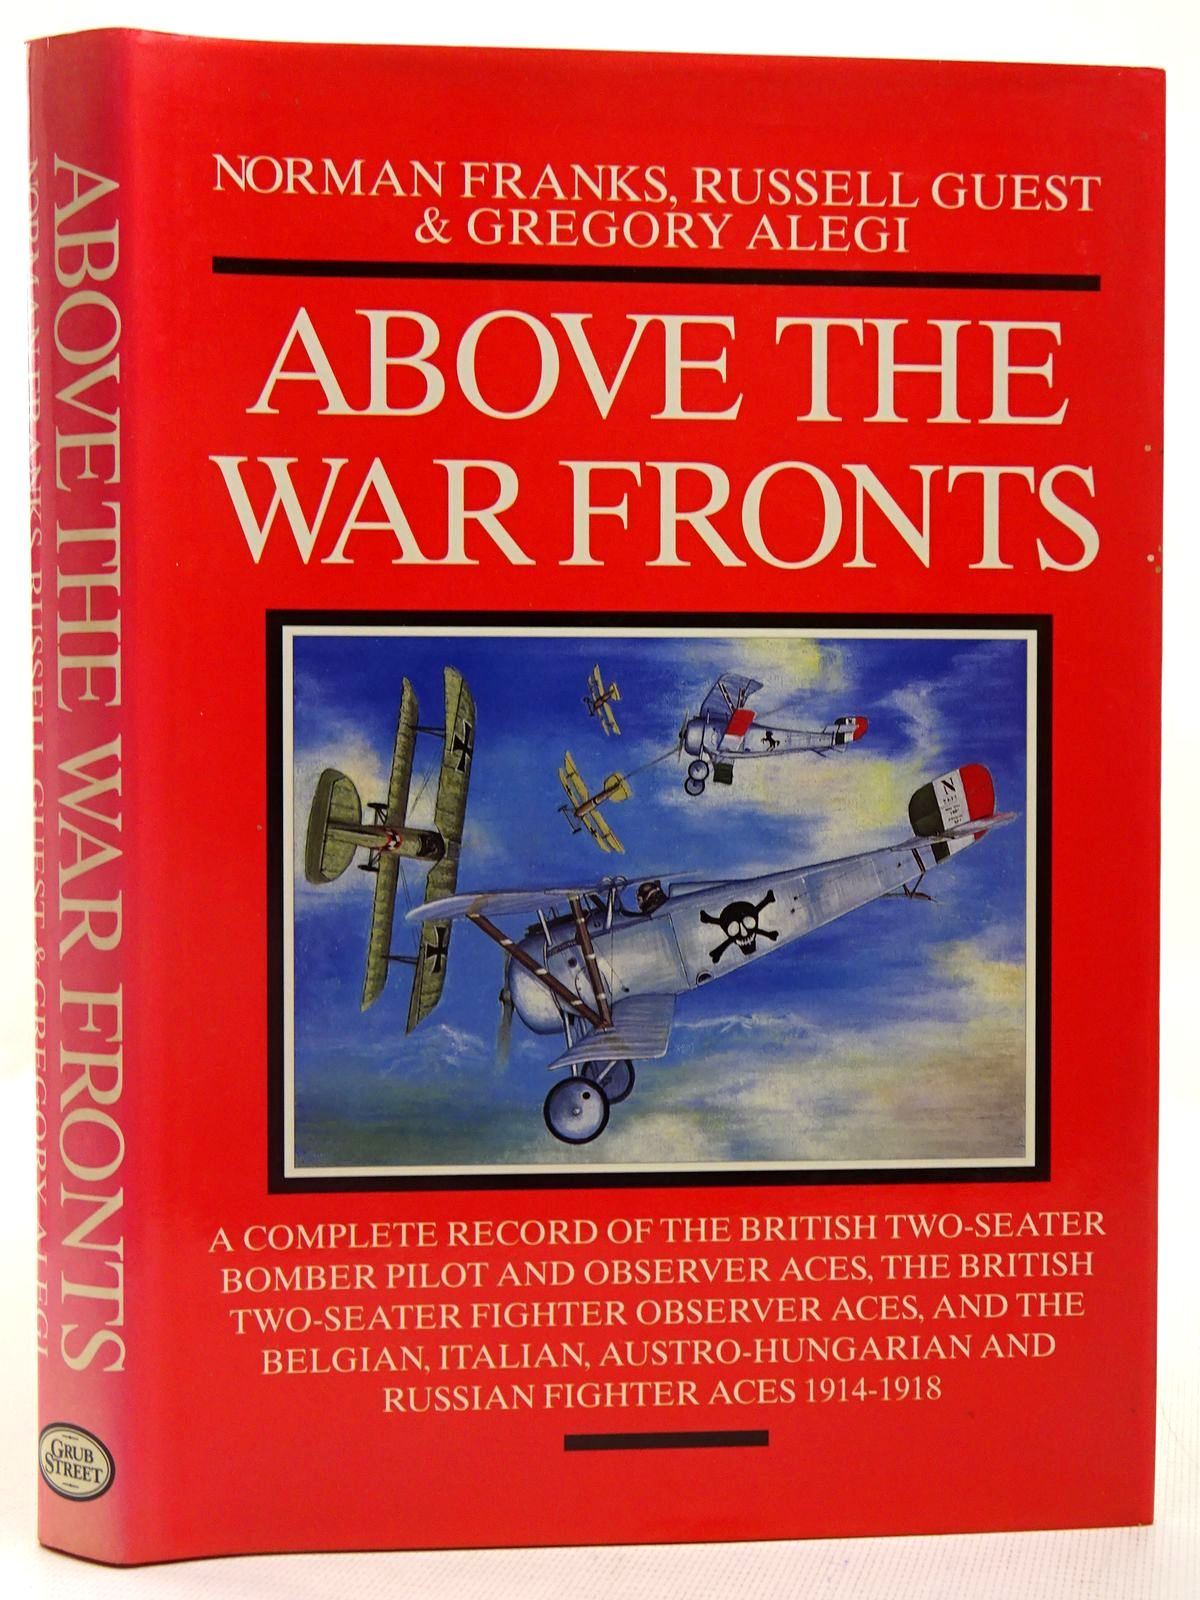 Photo of ABOVE THE WAR FRONTS written by Franks, Norman Guest, Russell Alegi, Gregory published by Grub Street (STOCK CODE: 2127881)  for sale by Stella & Rose's Books